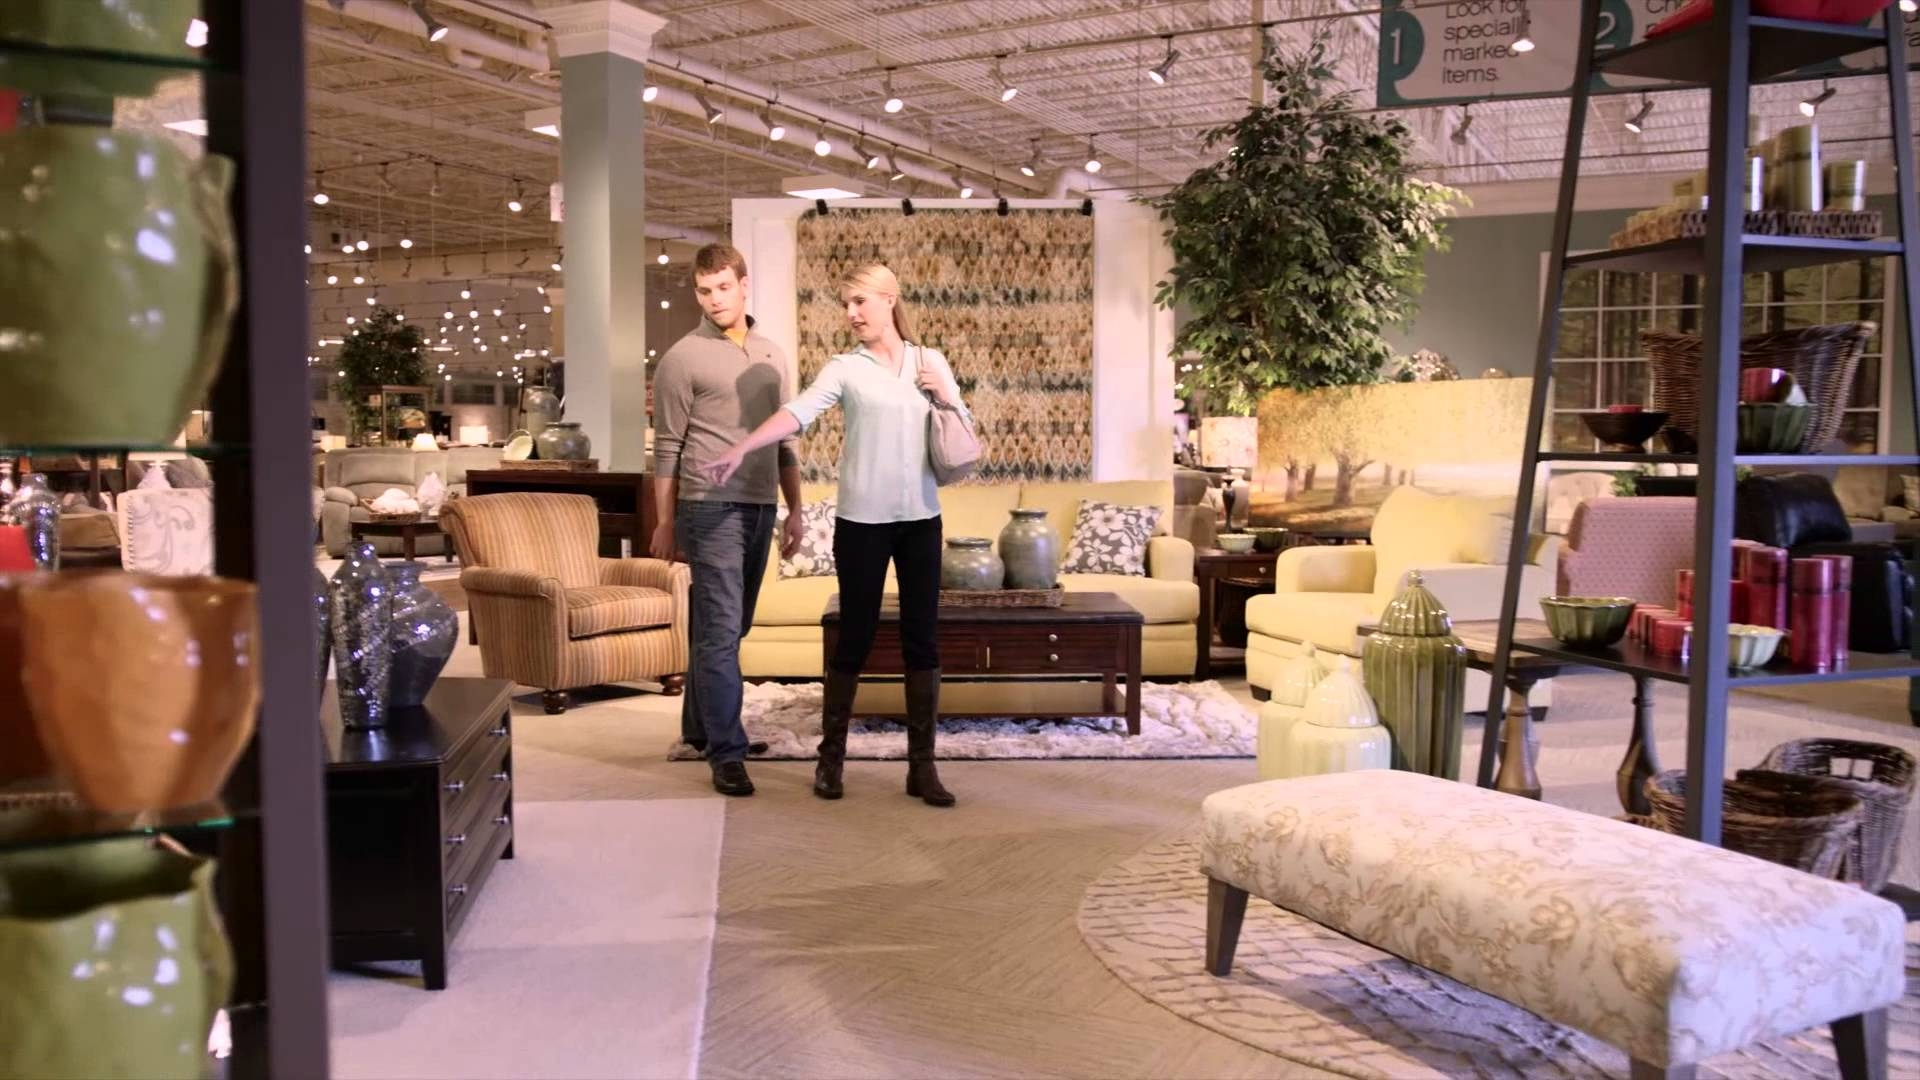 Visit The Newly Remodeled Sofa Mart At Furniture Row In Joplin Regarding Sofa Mart Chairs (Image 15 of 15)